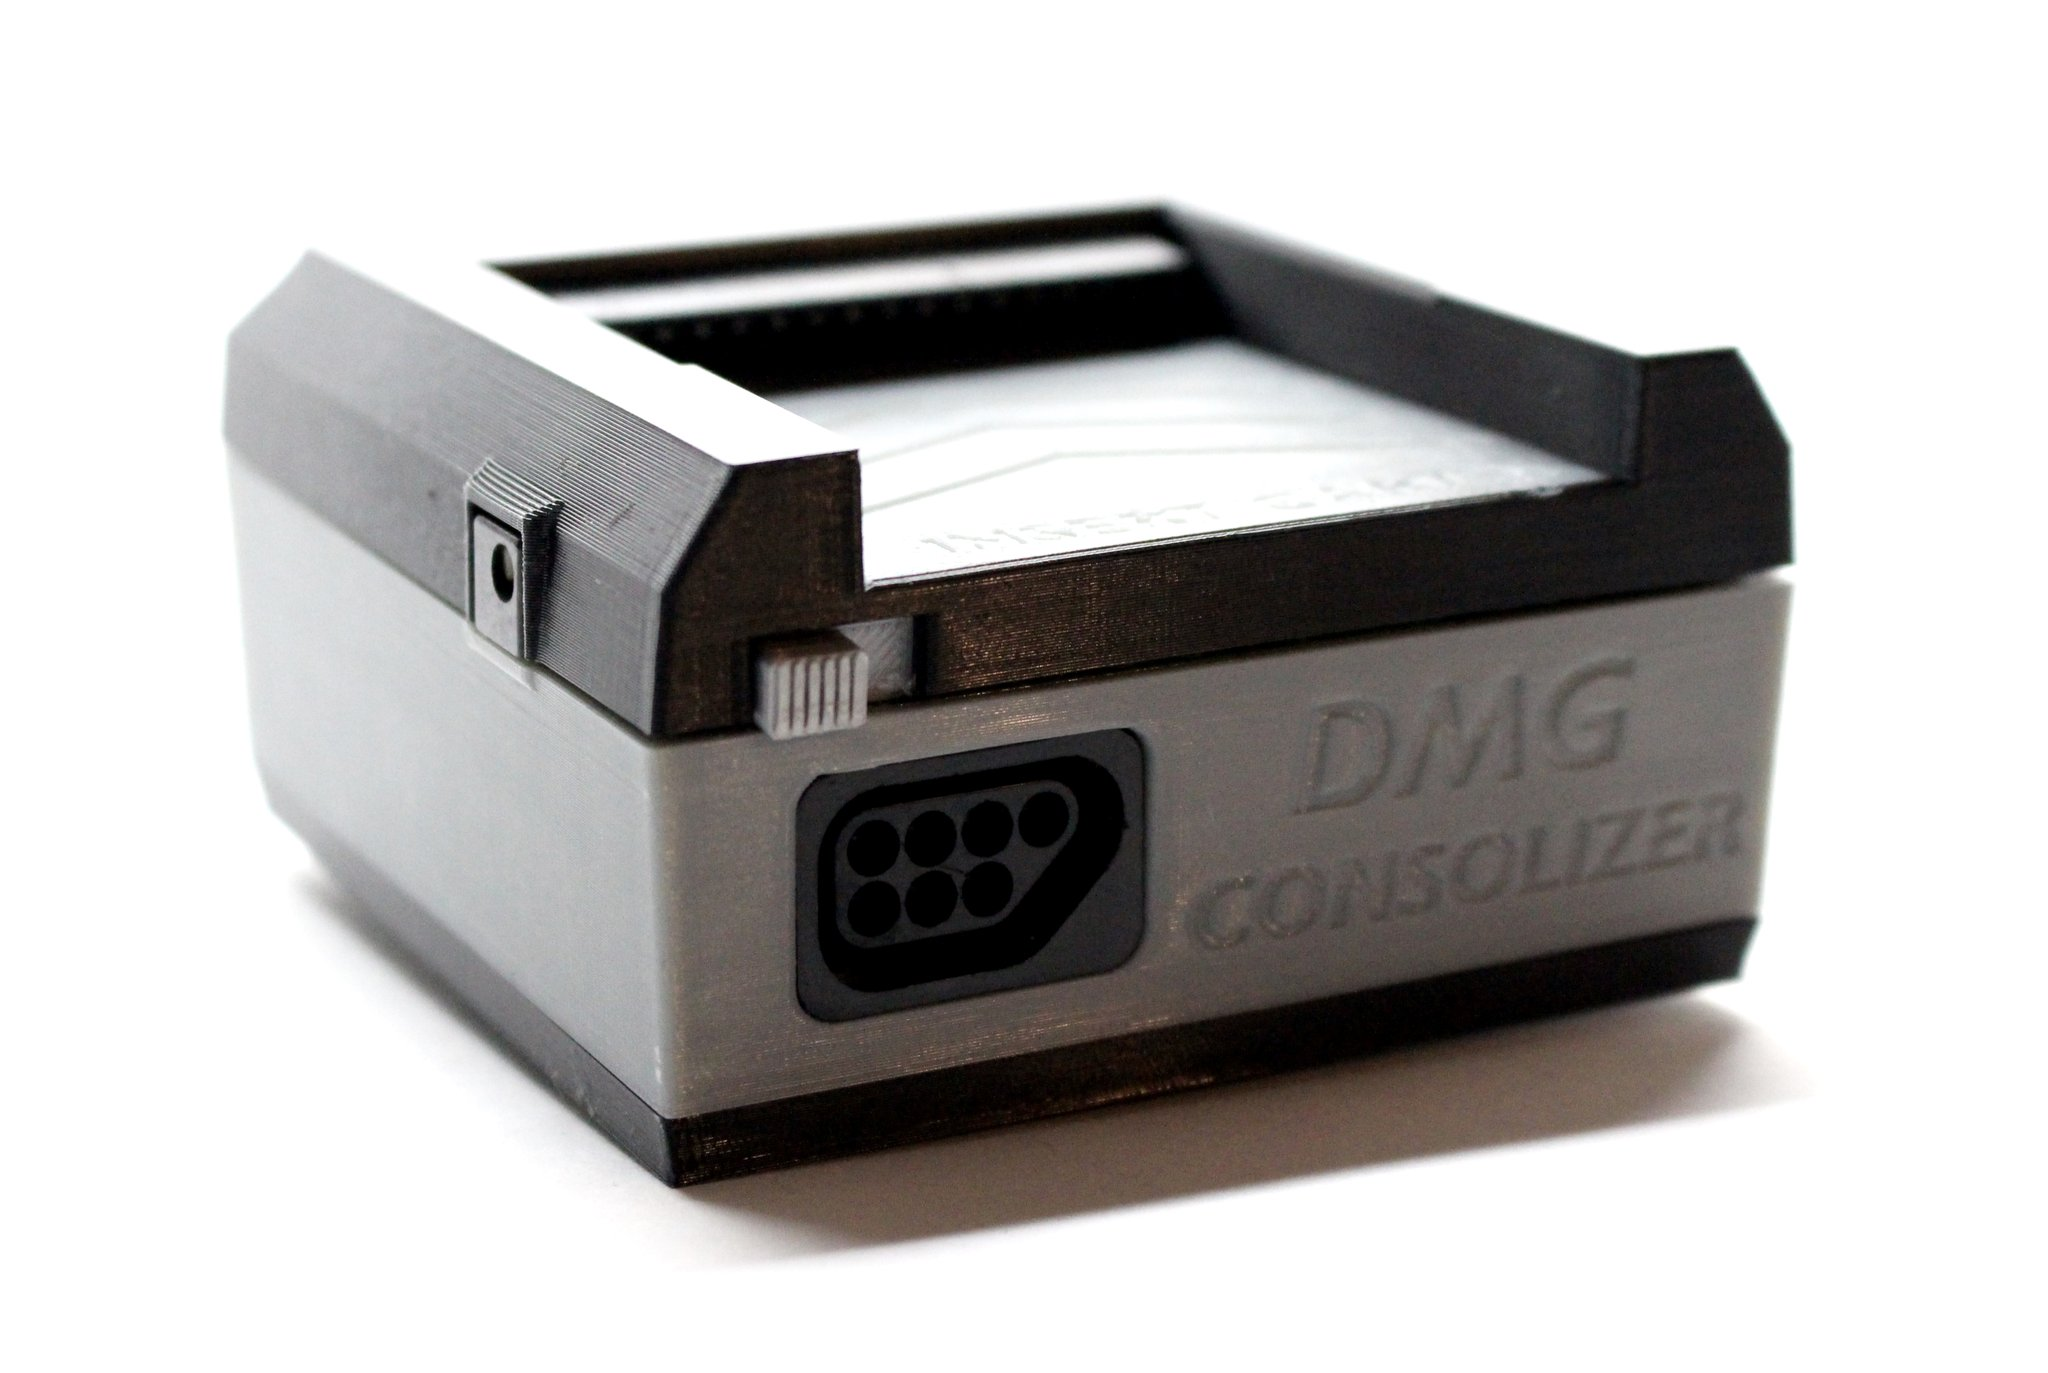 DMG Consolizer by Gamebox Systems